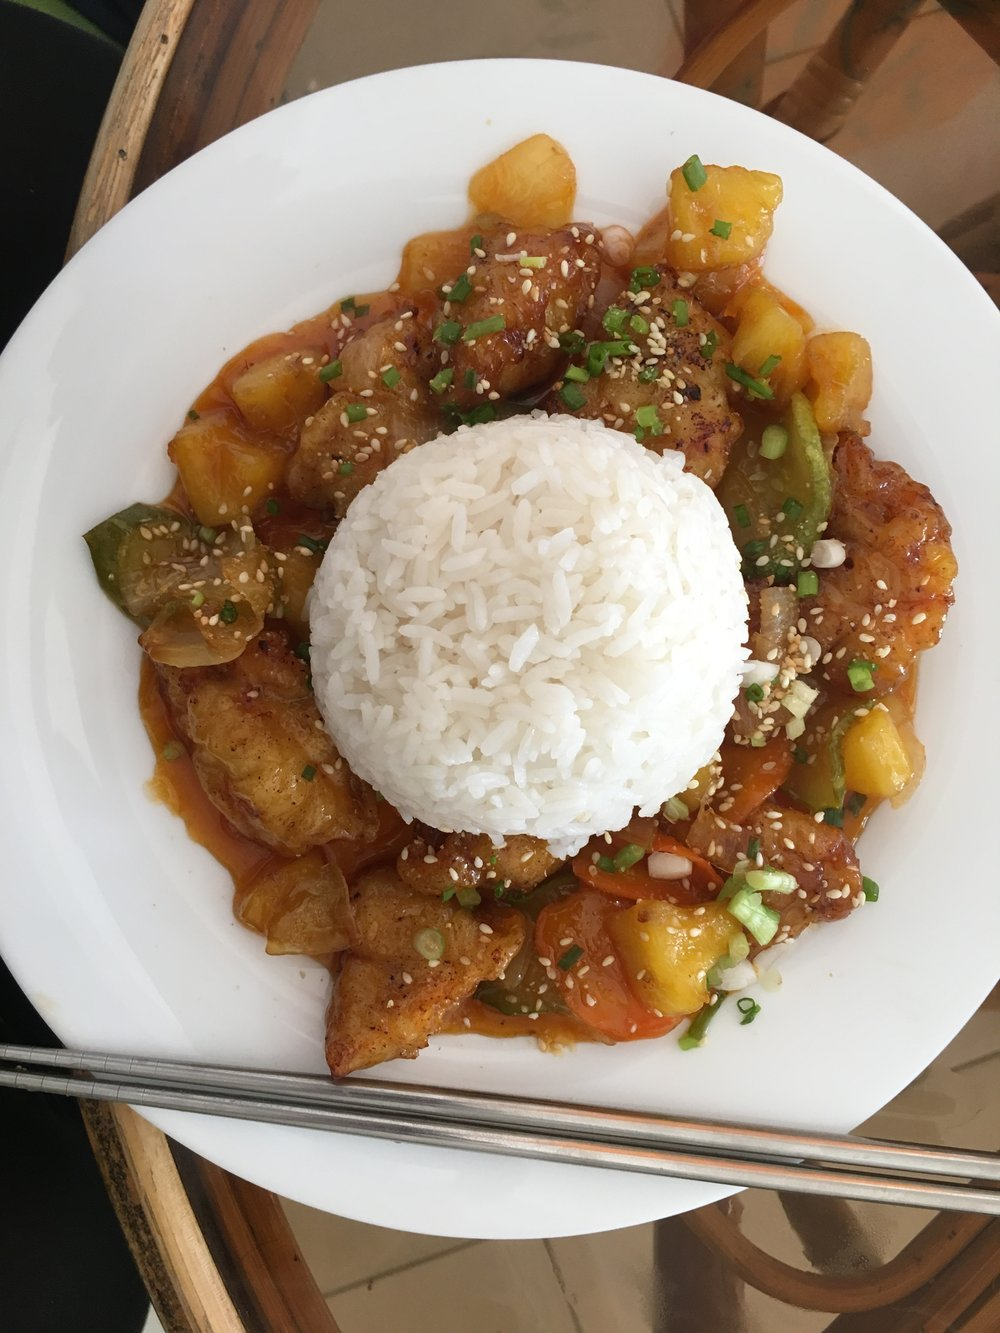 Kimchi - Sweet and sour chicken